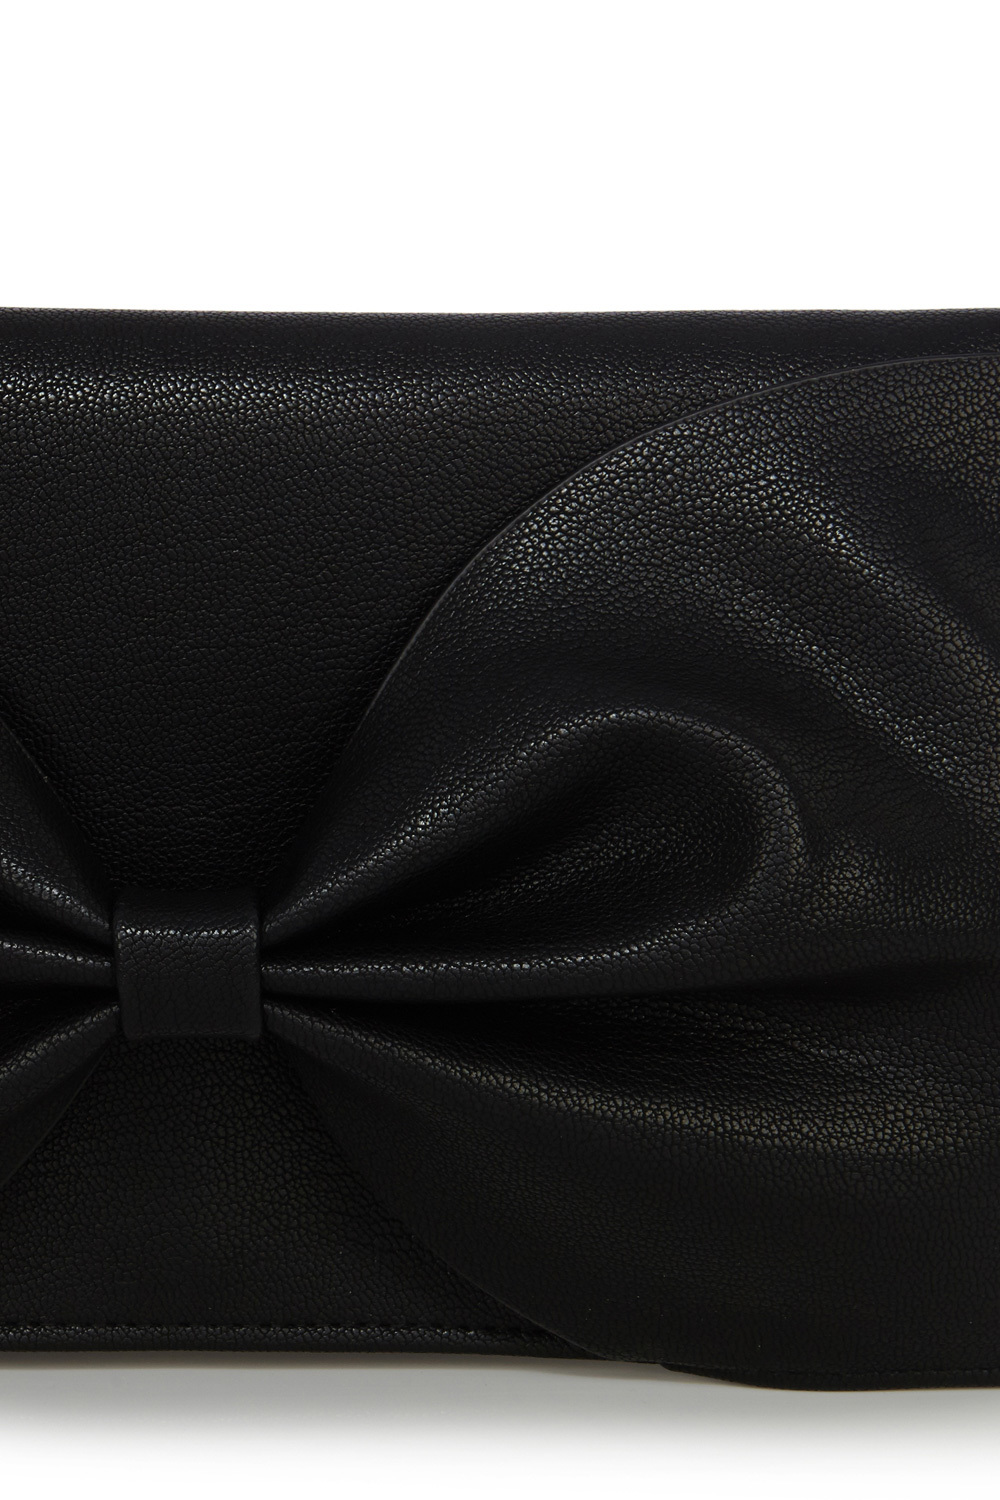 Bow Bag Clutch - predominant colour: black; occasions: evening, occasion; style: clutch; length: hand carry; size: standard; material: fabric; pattern: plain; finish: plain; season: a/w 2015